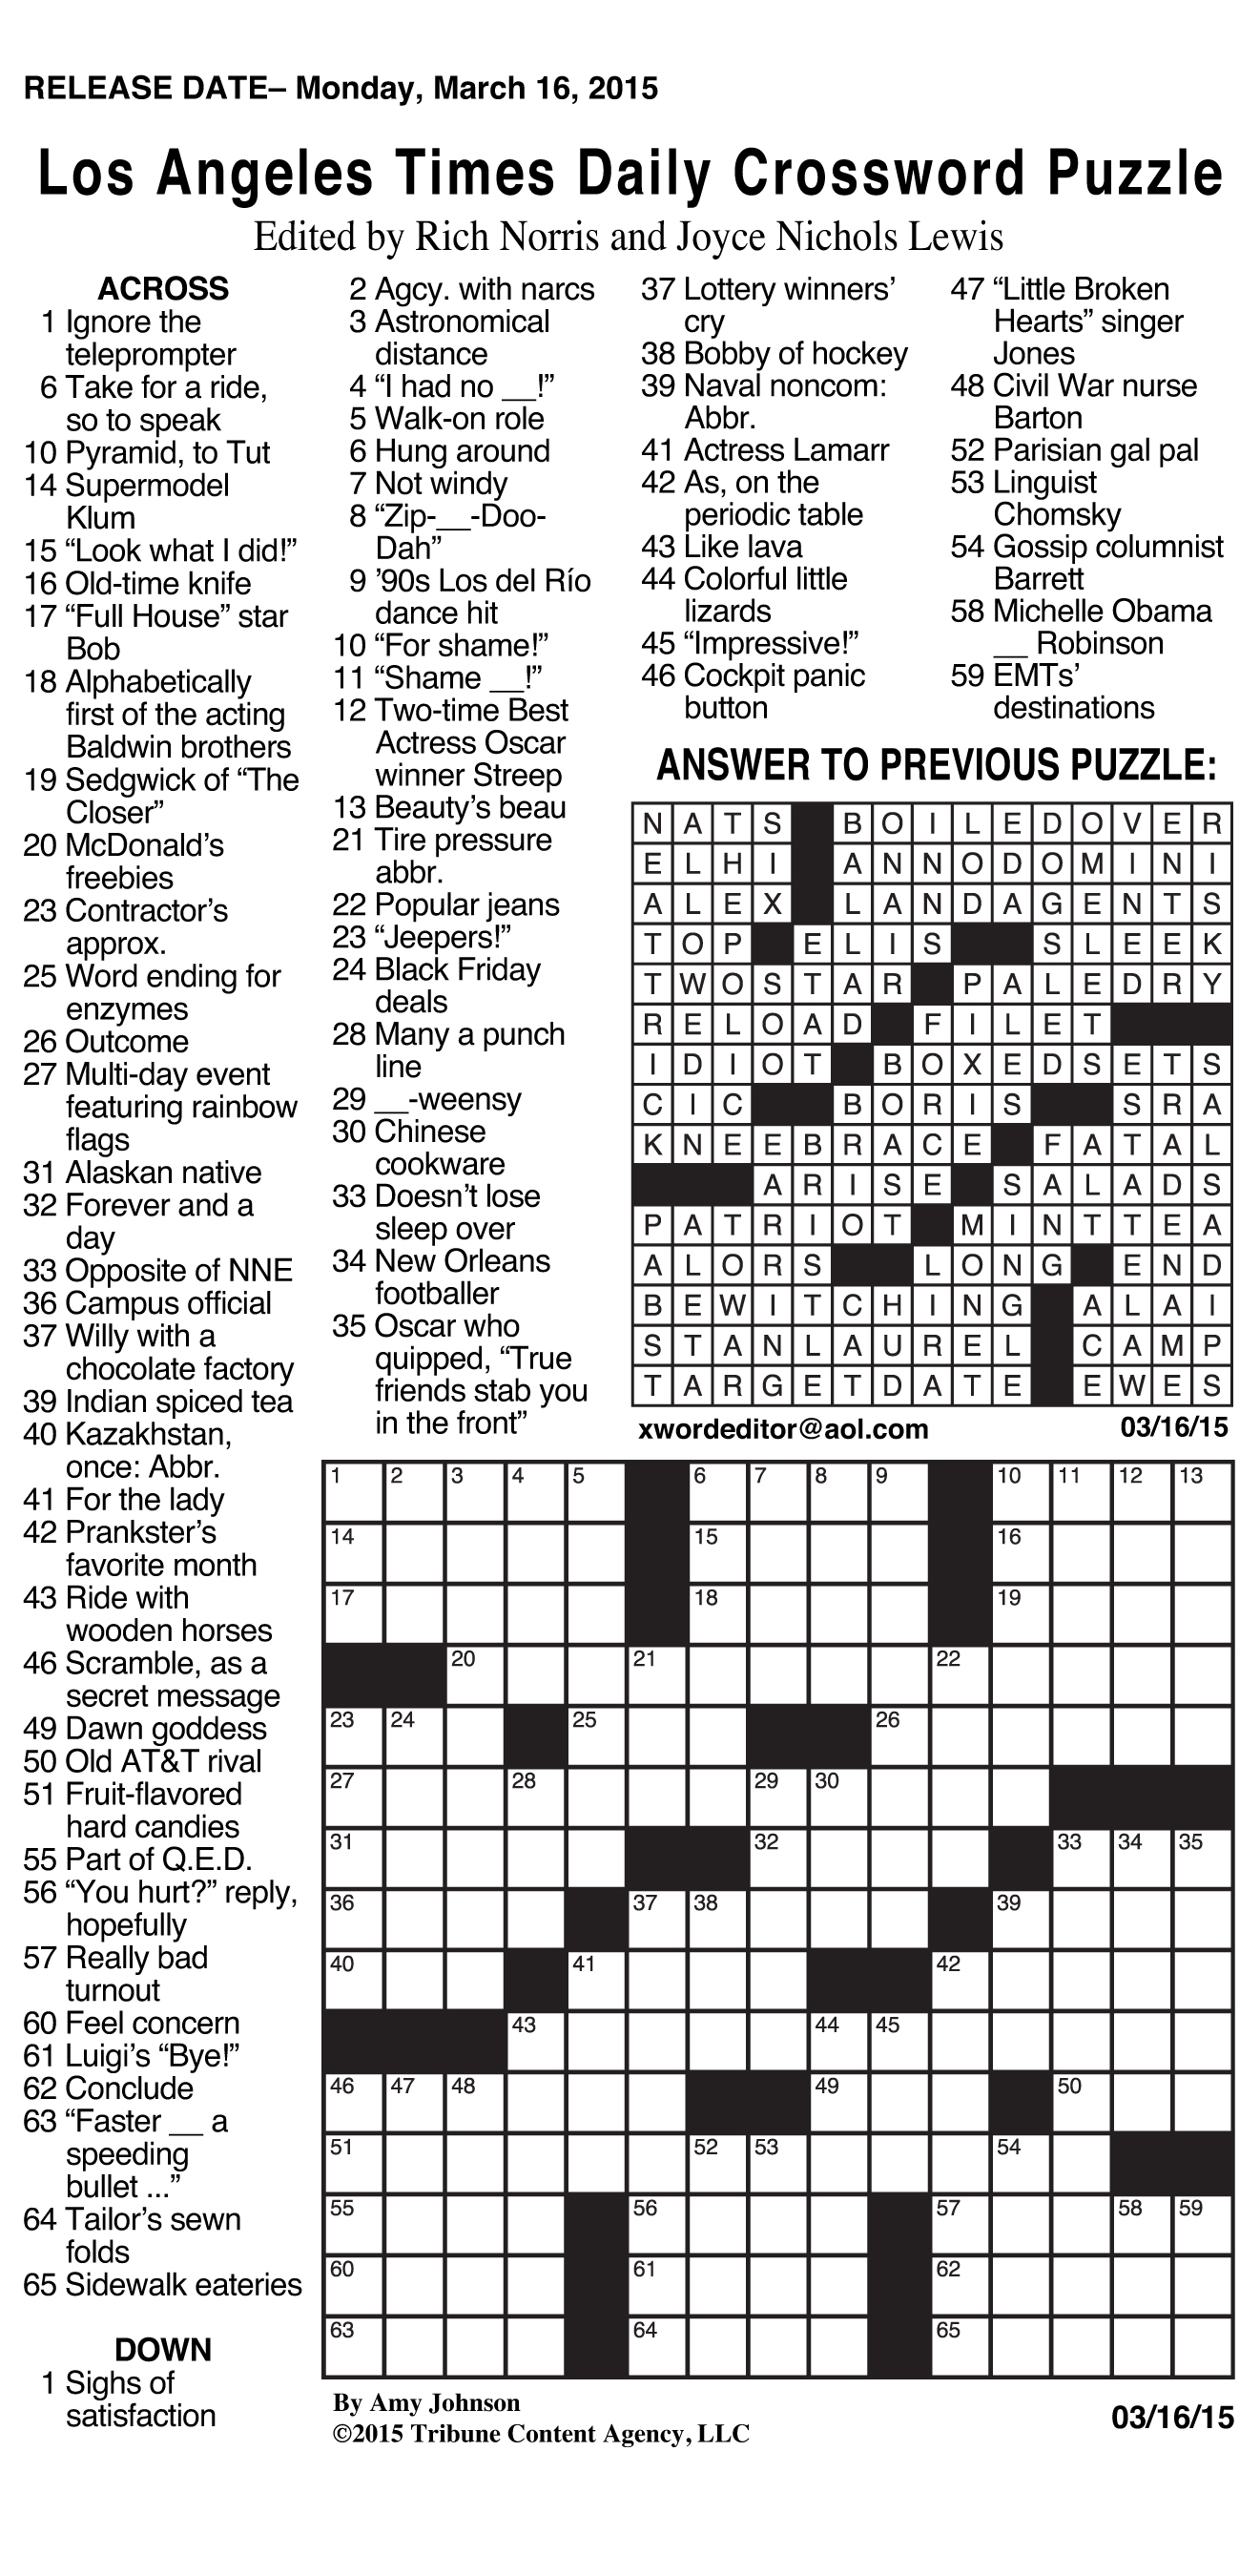 Sample Of Los Angeles Times Daily Crossword Puzzle | Tribune Content - Newspaper Printable Crossword Puzzles